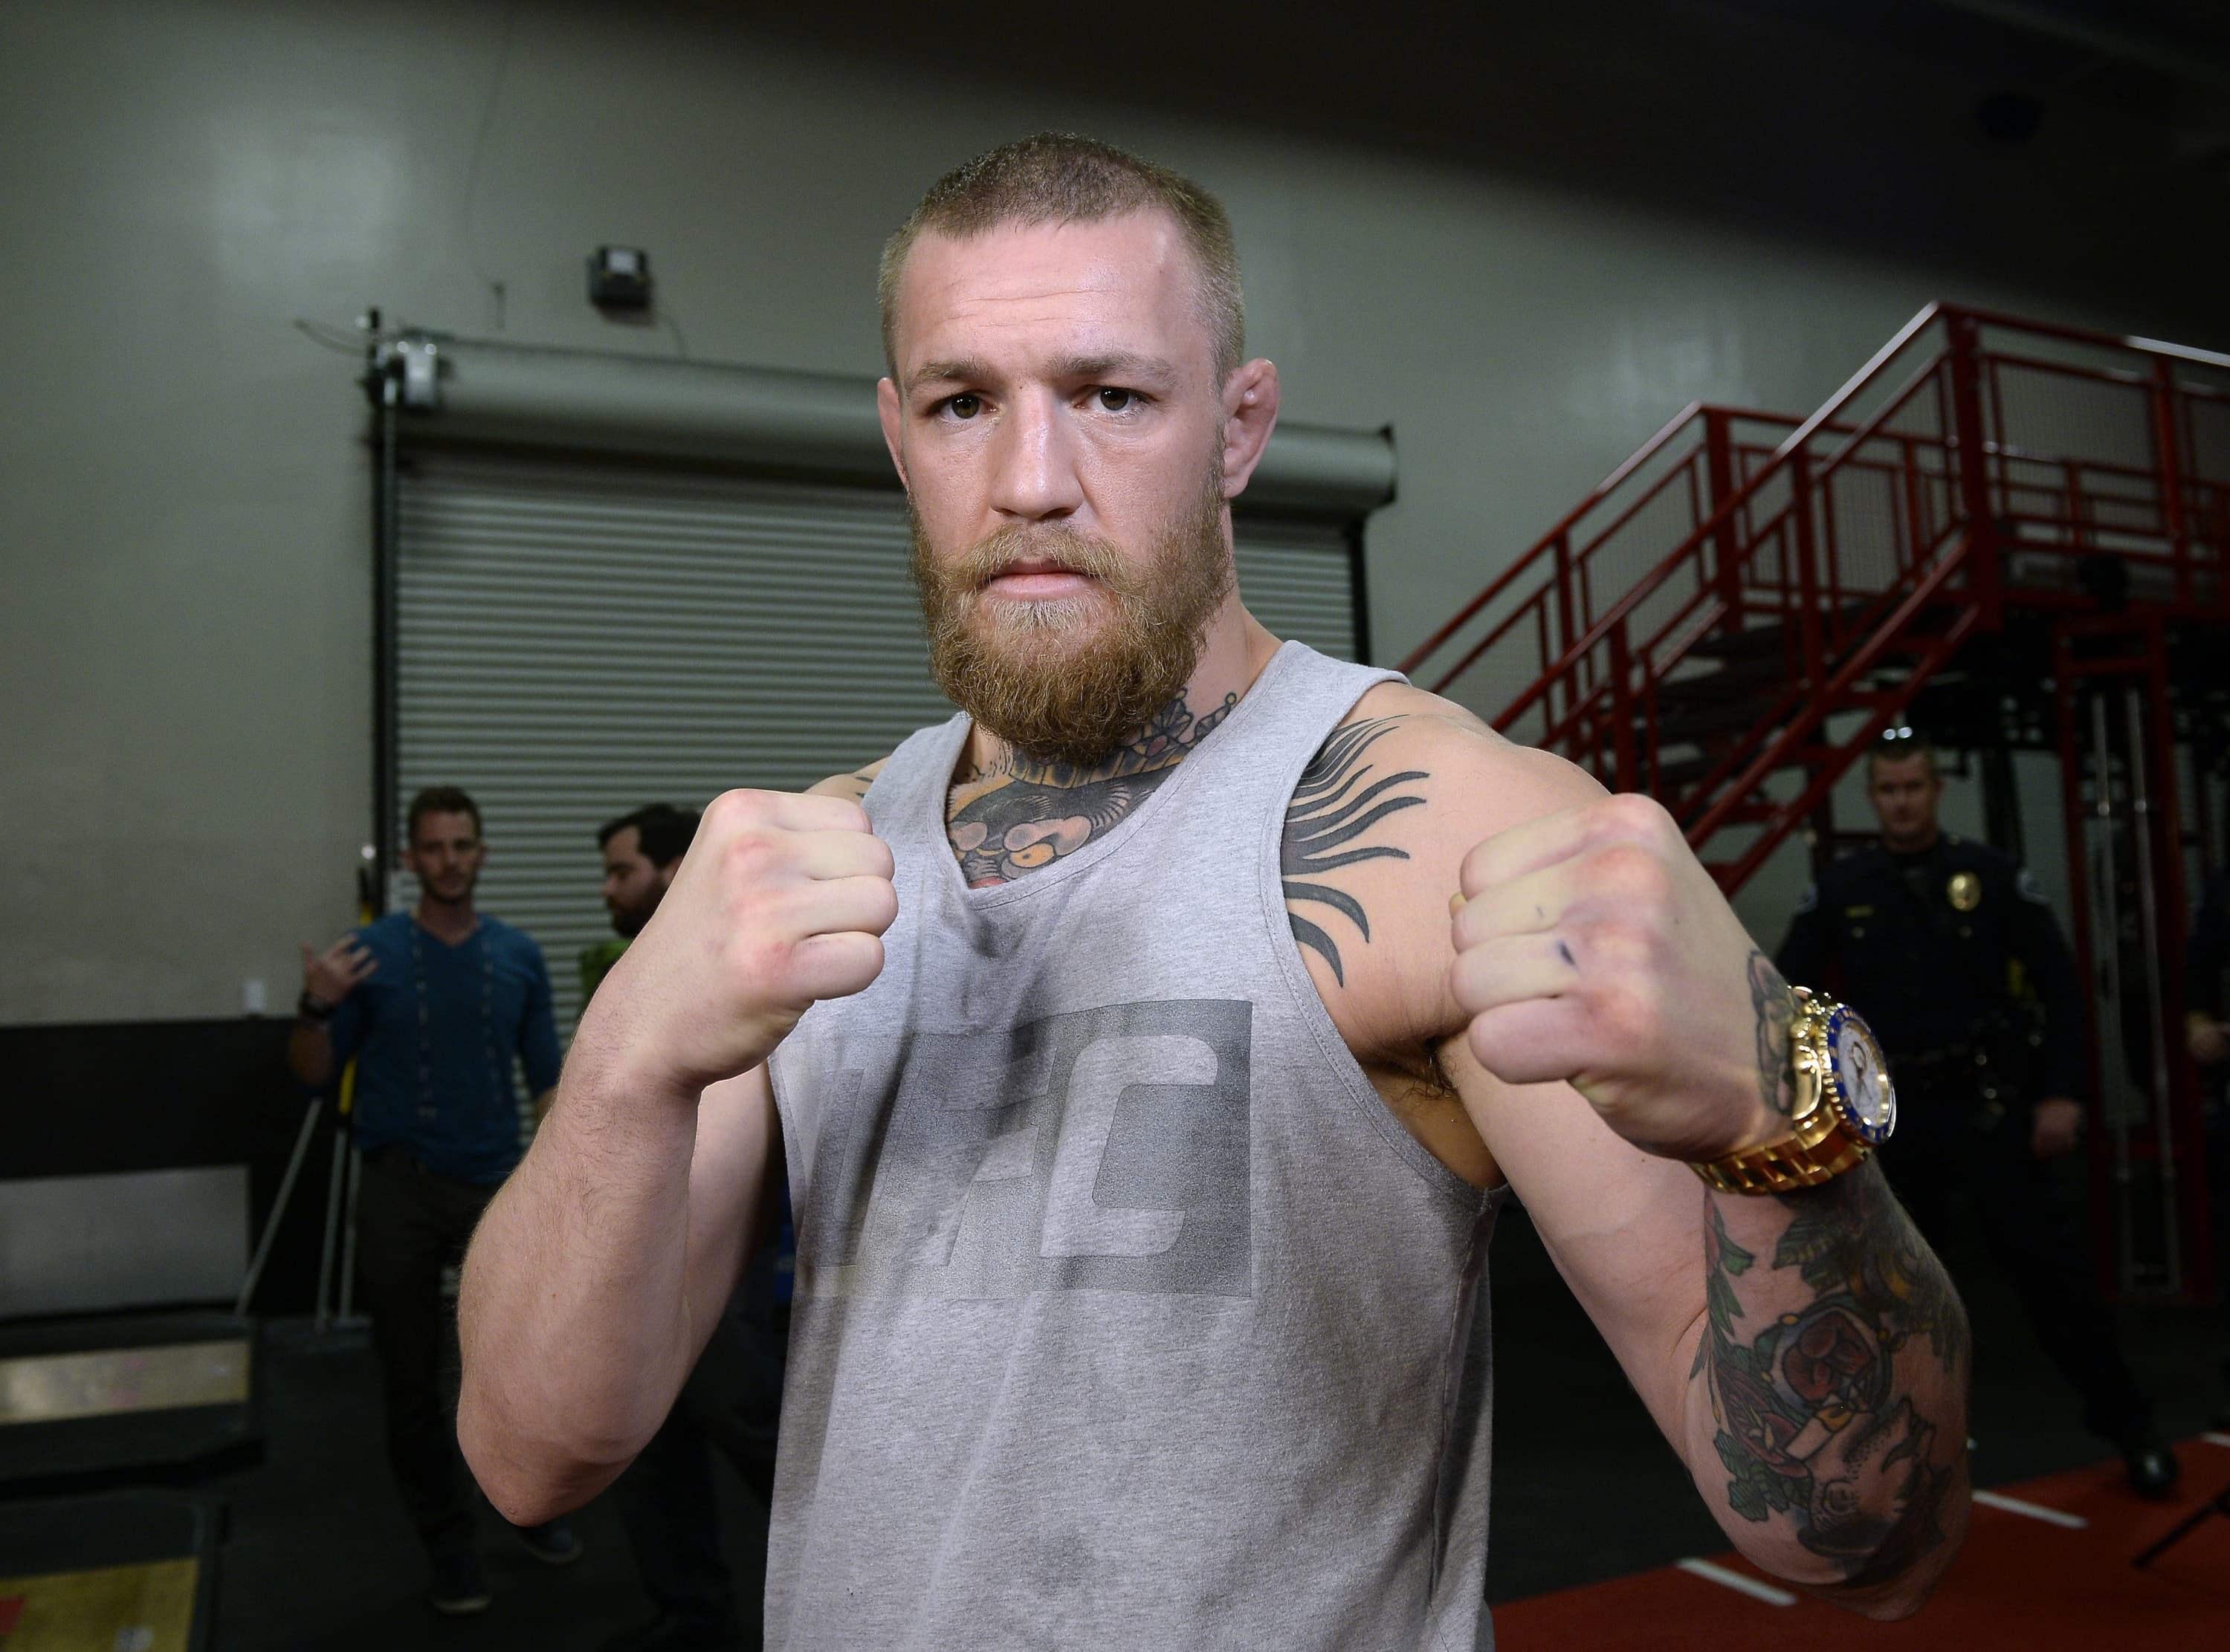 UFC featherweight champion Conor McGregor poses after a news conference with lightweight contender Nate Diaz at UFC Gym February 24, 2016, in Torrance, California.